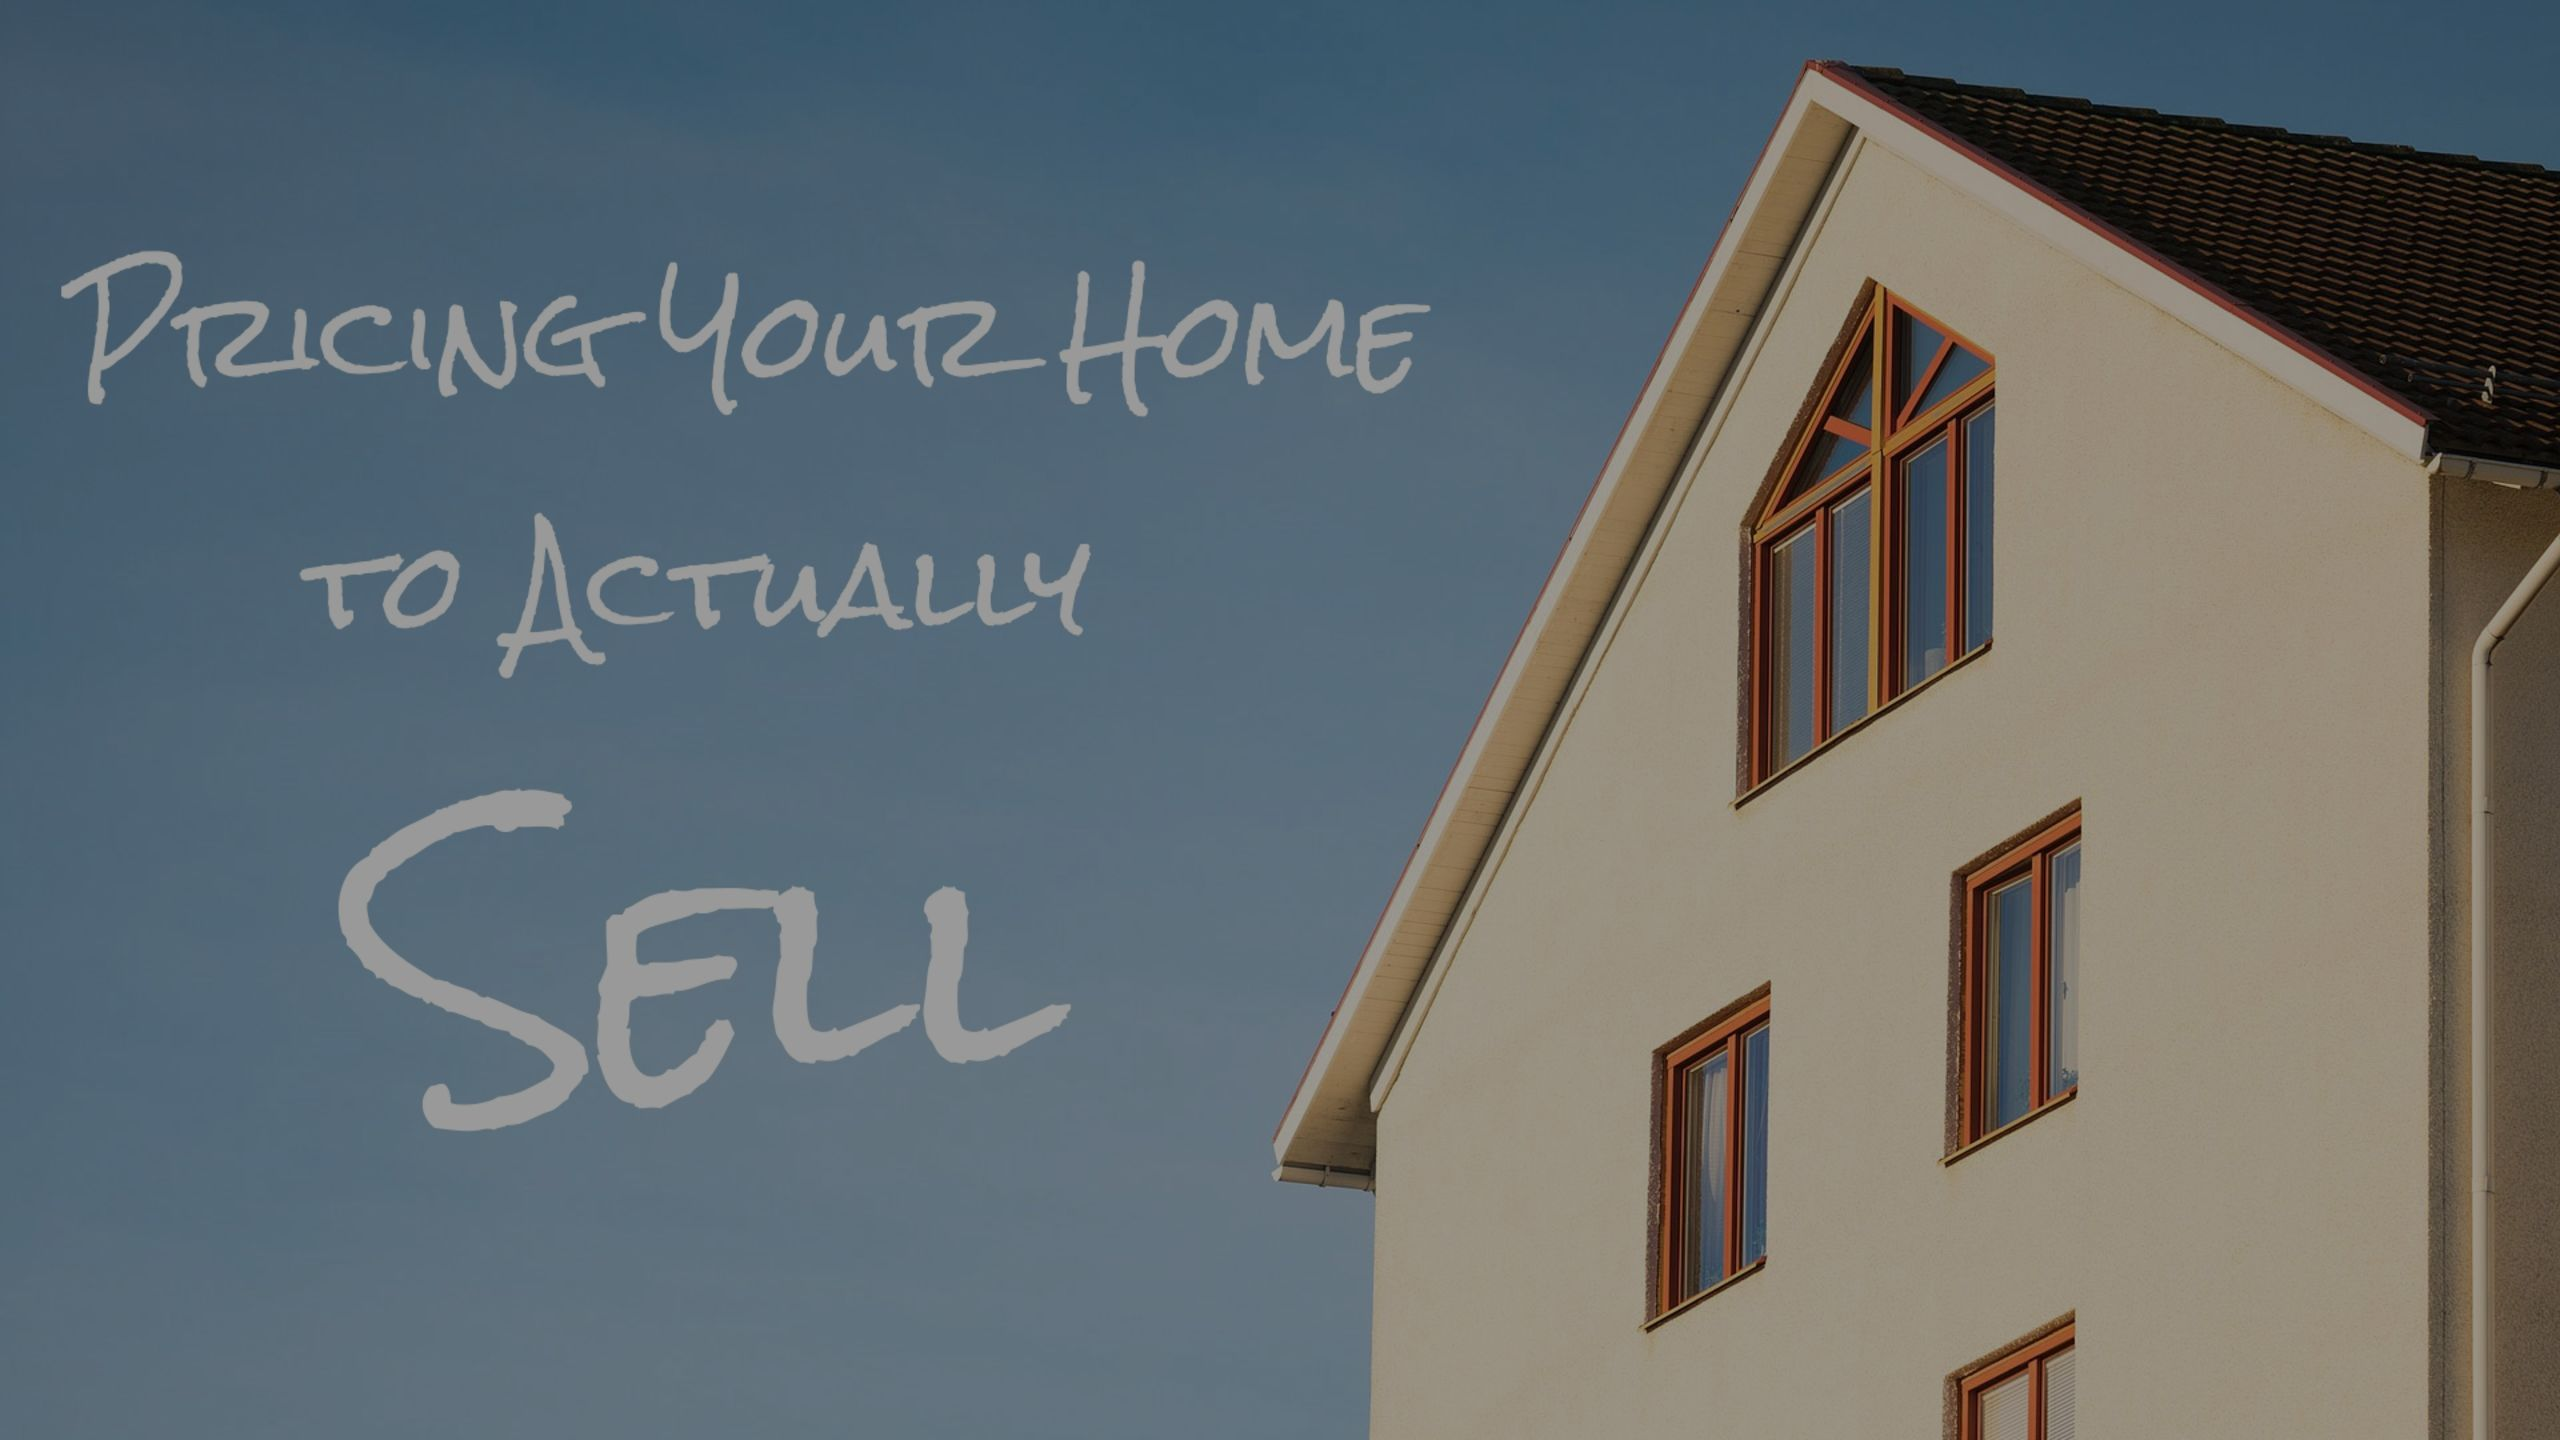 Pricing Your Home to Actually Sell